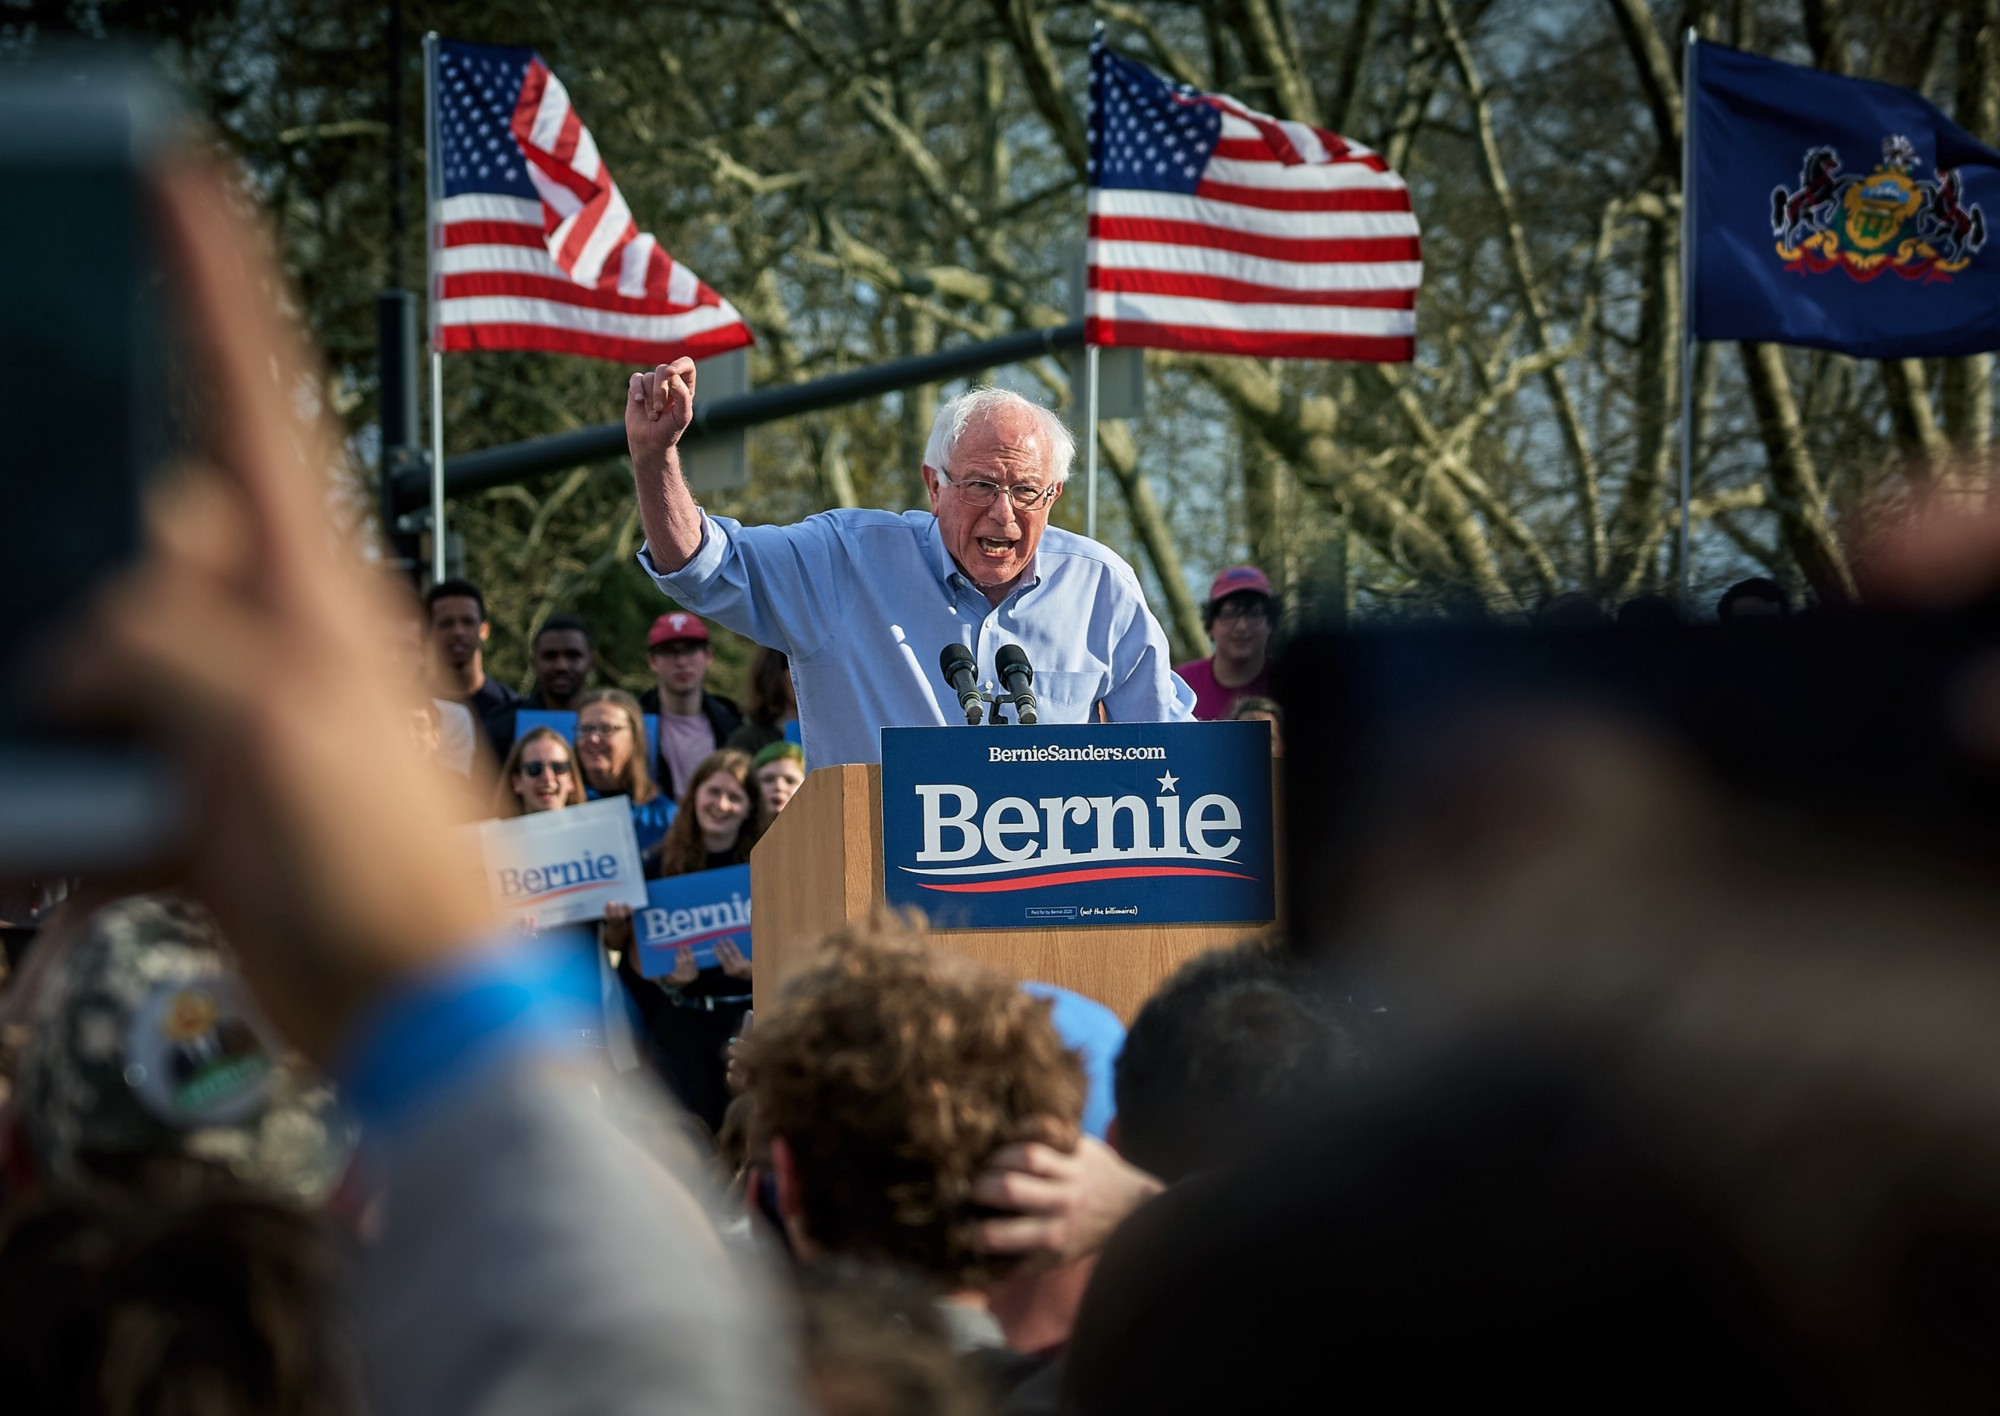 Bernie Sanders speaking at a podium outside, with American flags behind him